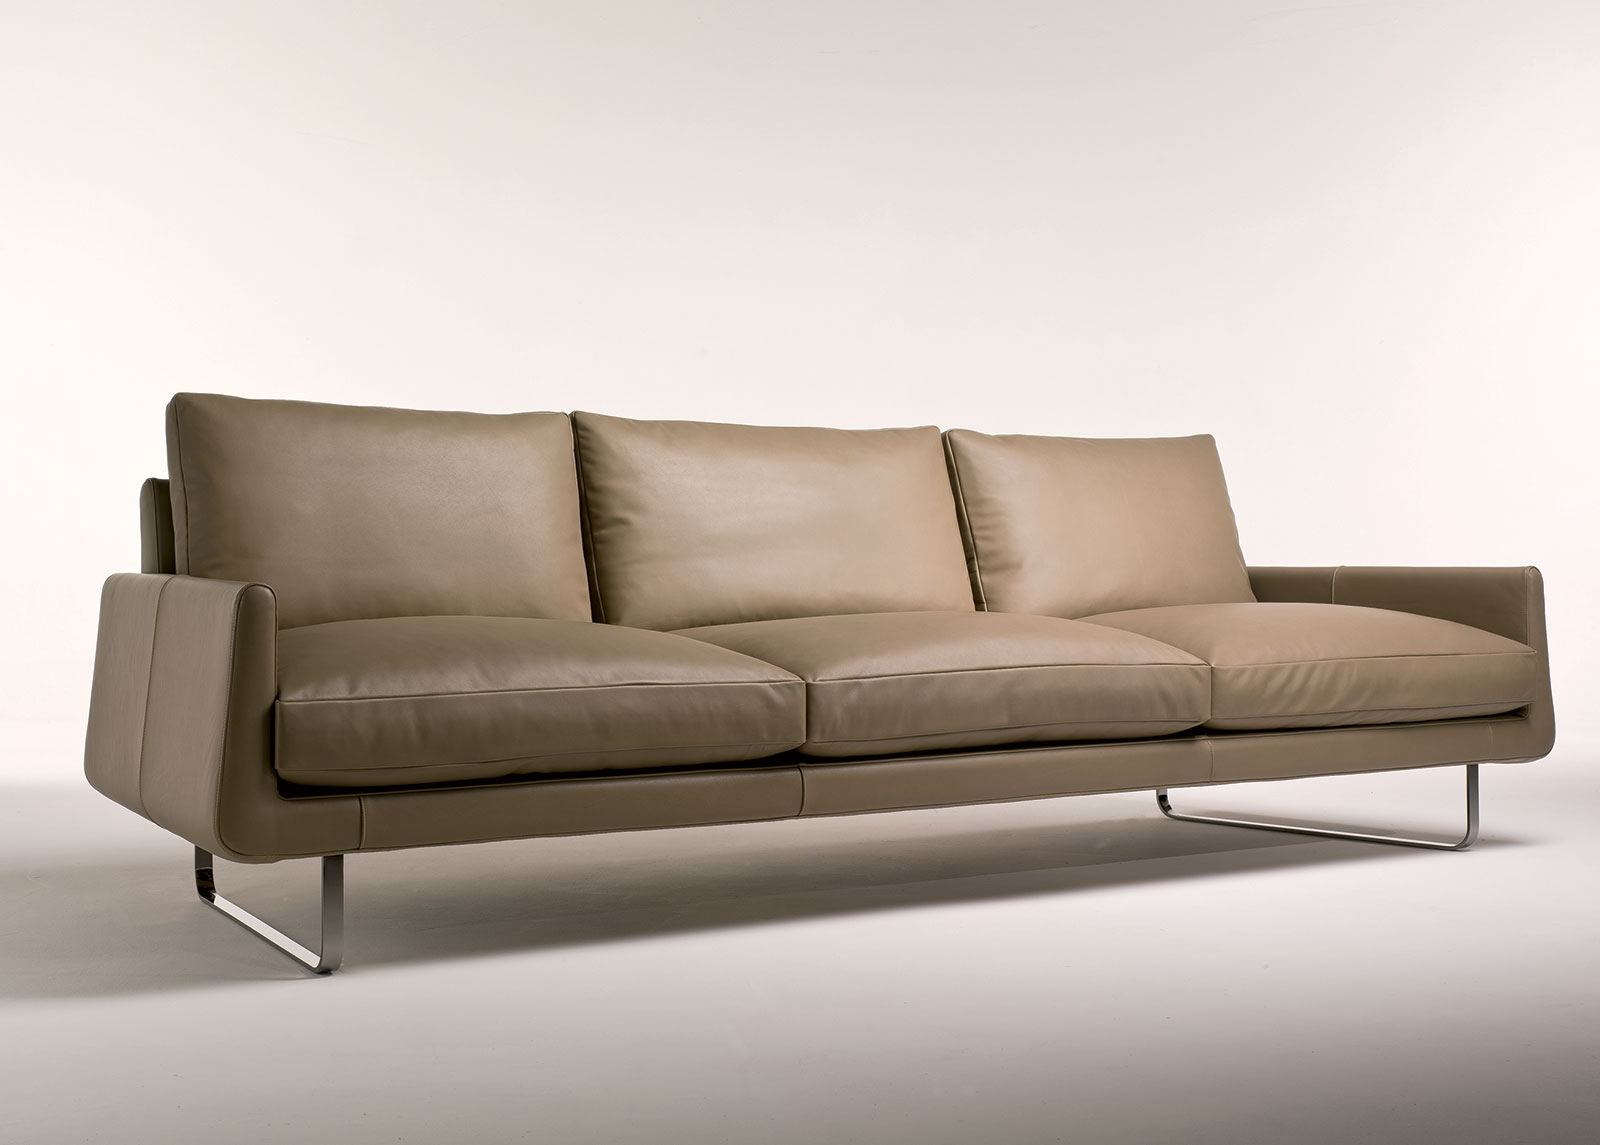 Joshua 4 Seater Leather Sofa Shop Online Italy Dream Design With 4 Seater Sofas (Image 13 of 15)